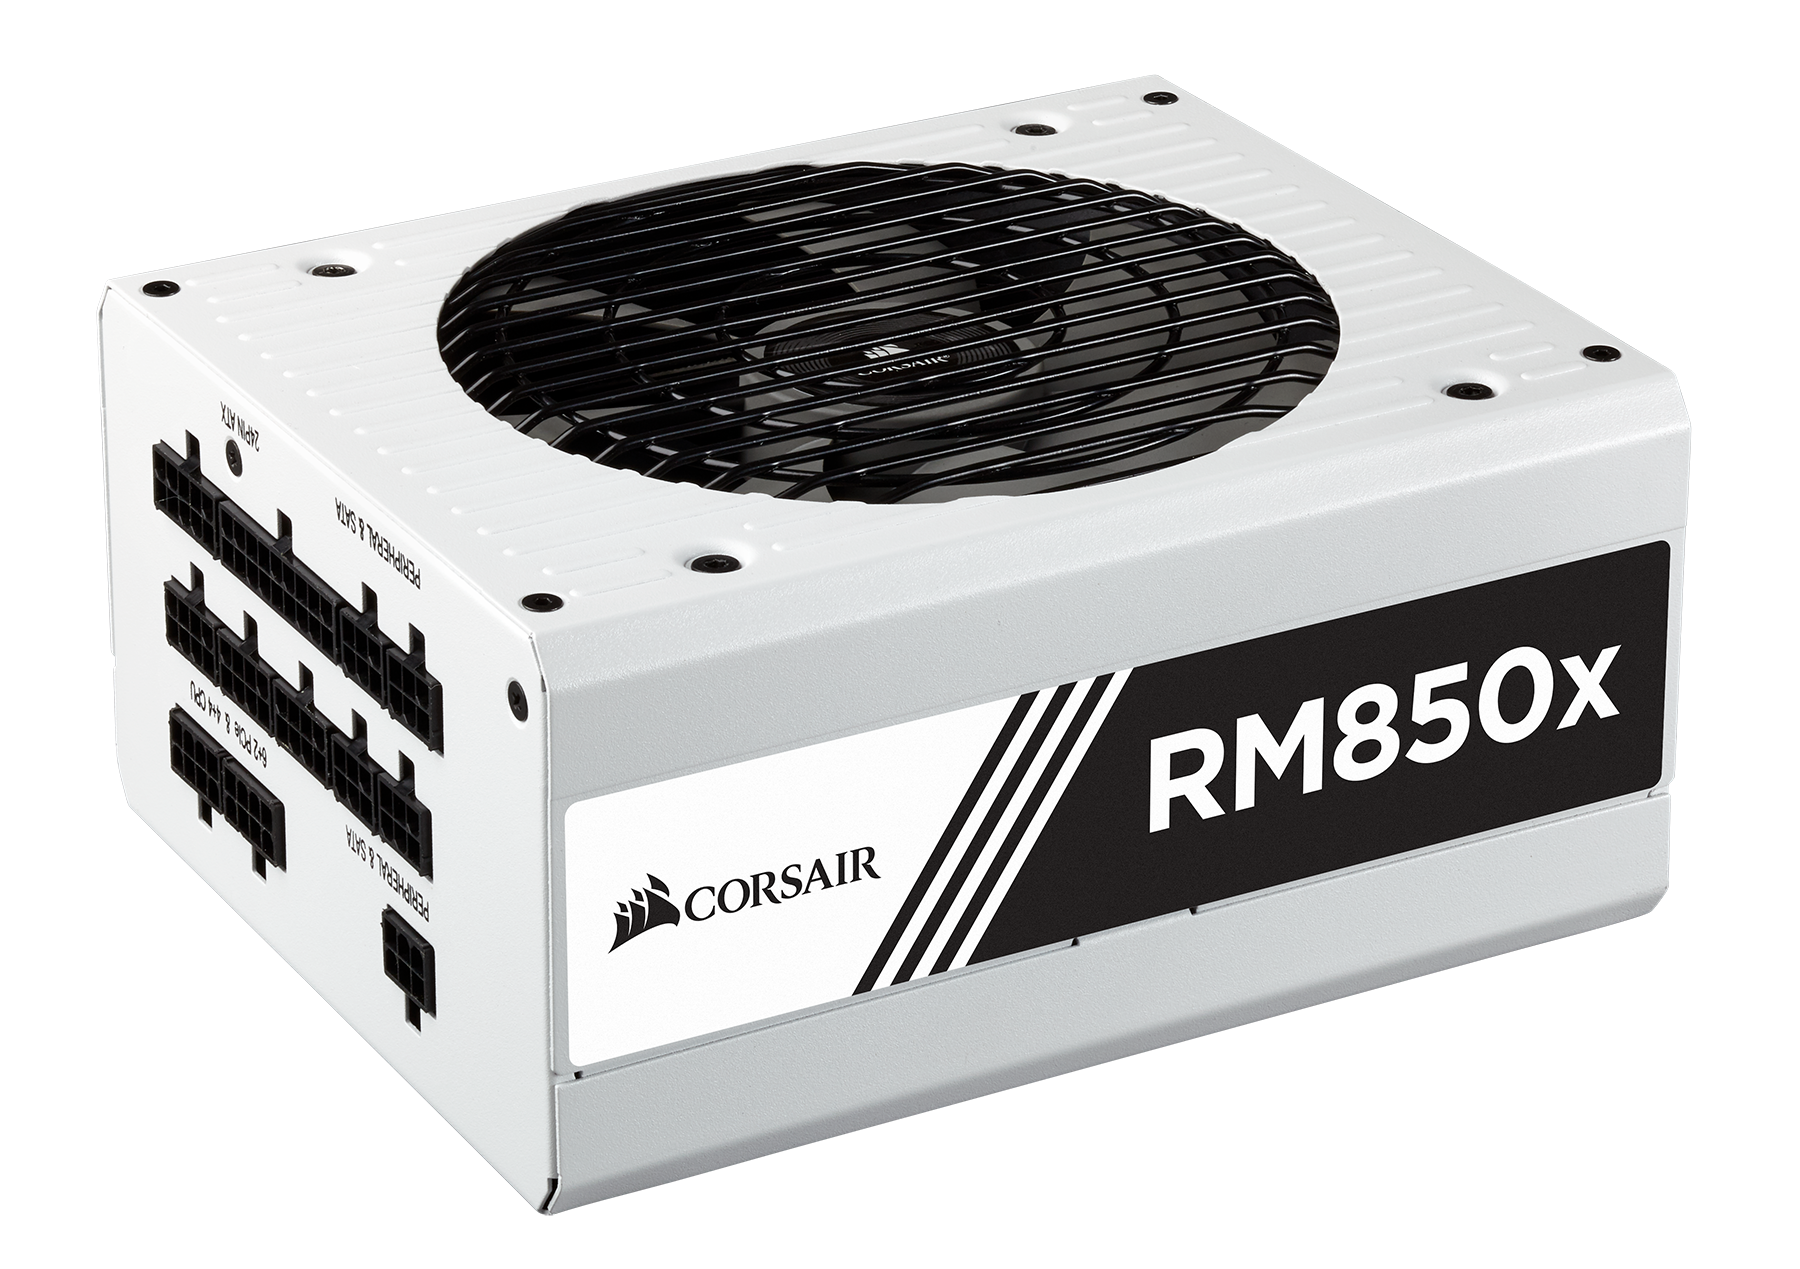 CORSAIR RM850x CP-9020156-NA 850W ATX12V / EPS12V 80 PLUS GOLD ...